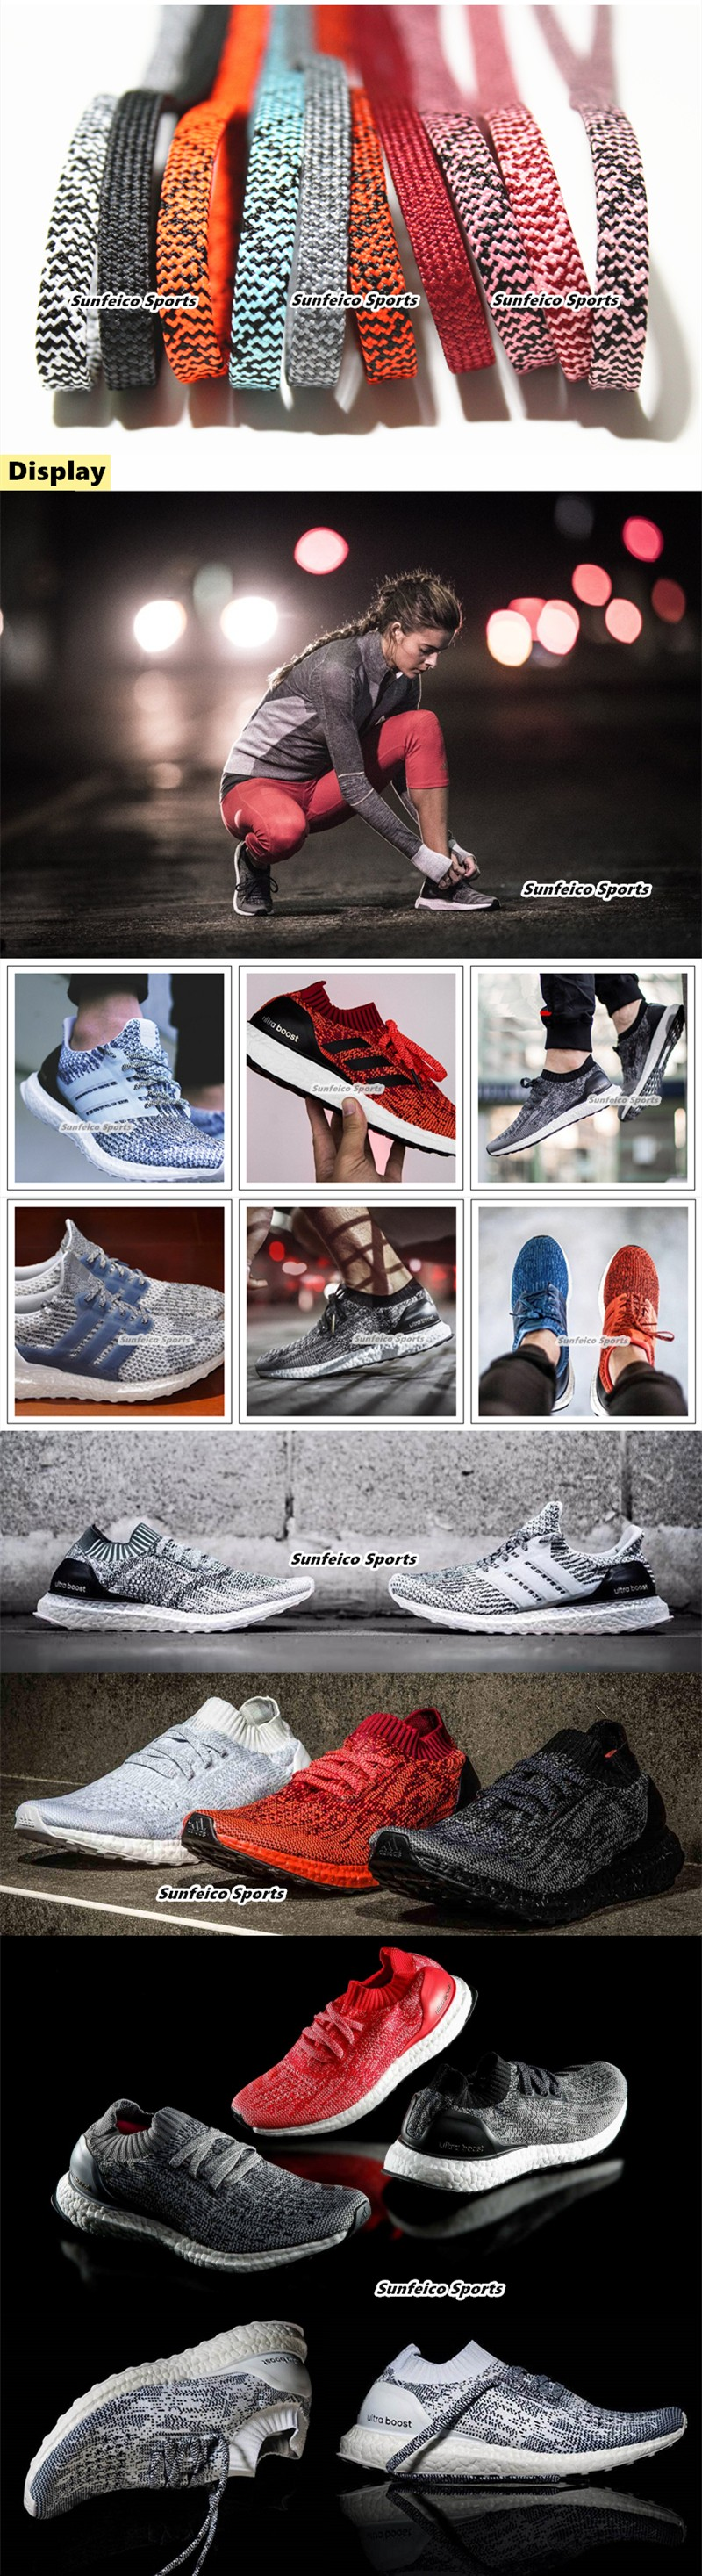 1e085d61a9b Flat Athletic Shoelaces Mixed Pattern Sneaker Shoelaces for Adidas Ultra  Boost Shoes